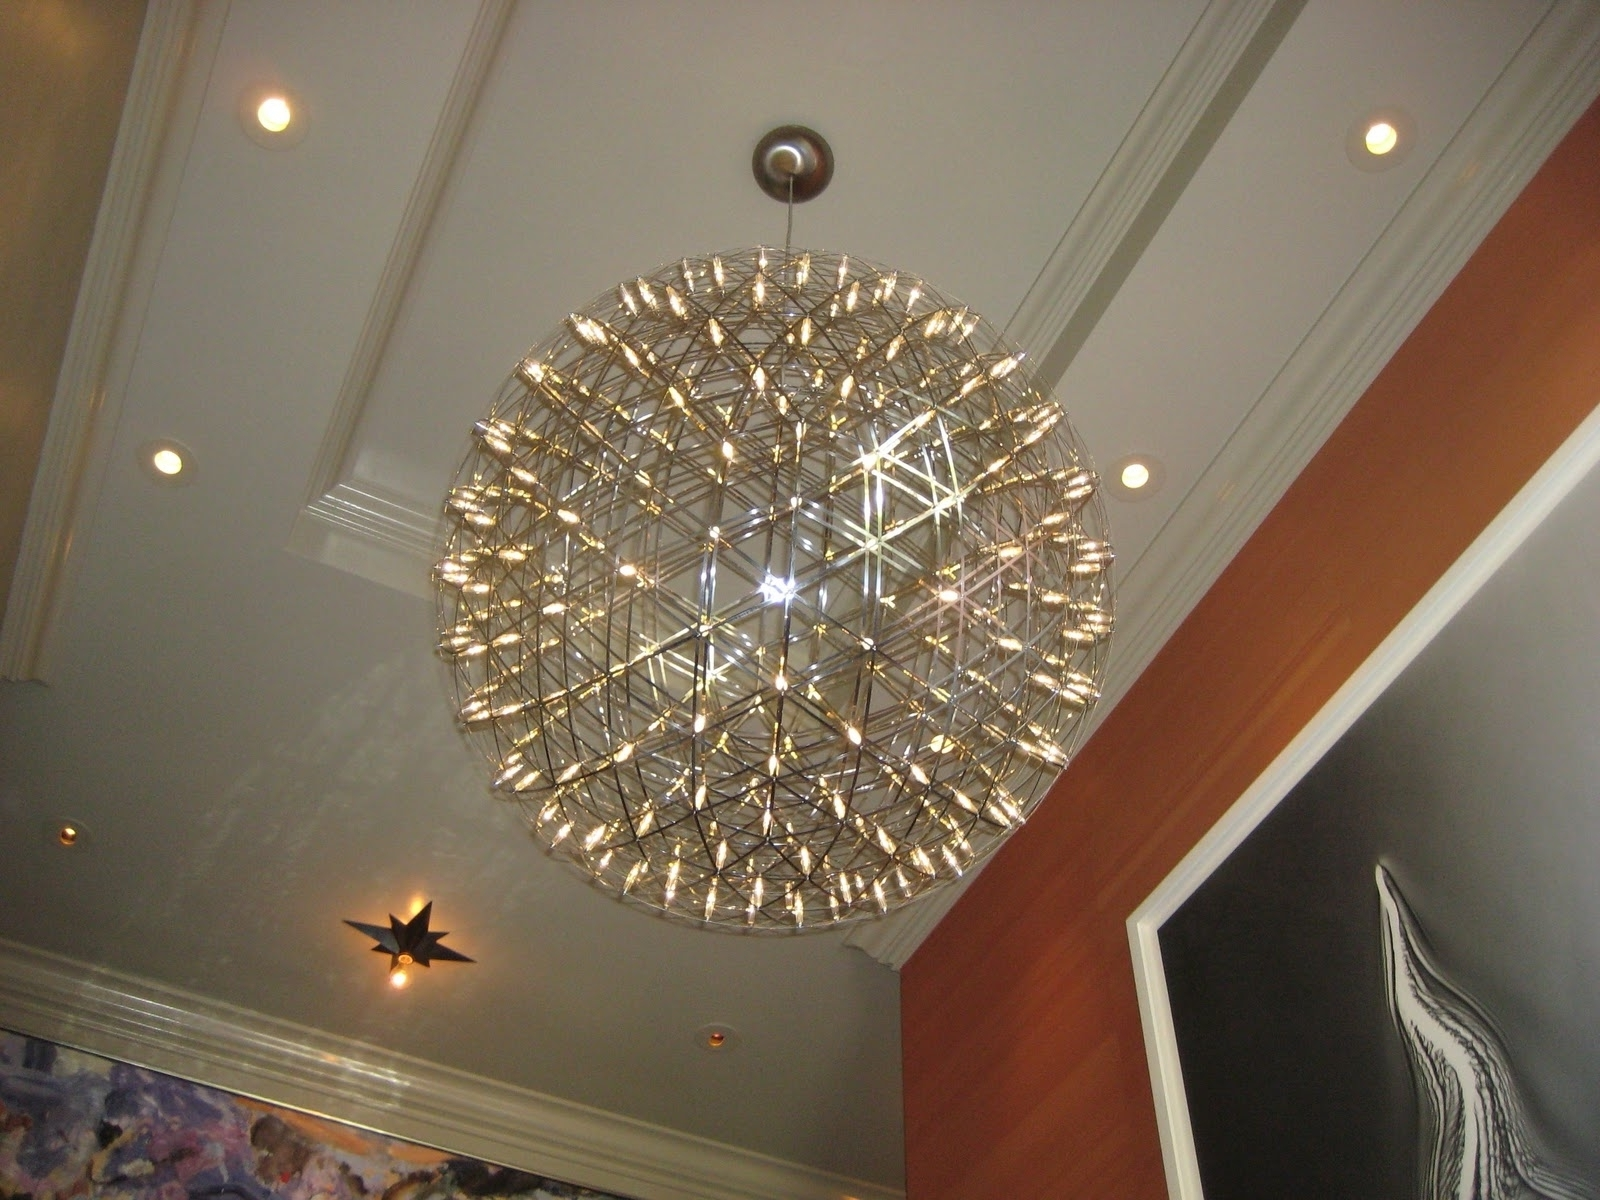 Large Modern Chandeliers Intended For Best And Newest Large Chandeliers Modern – Chandelier Designs (View 10 of 20)